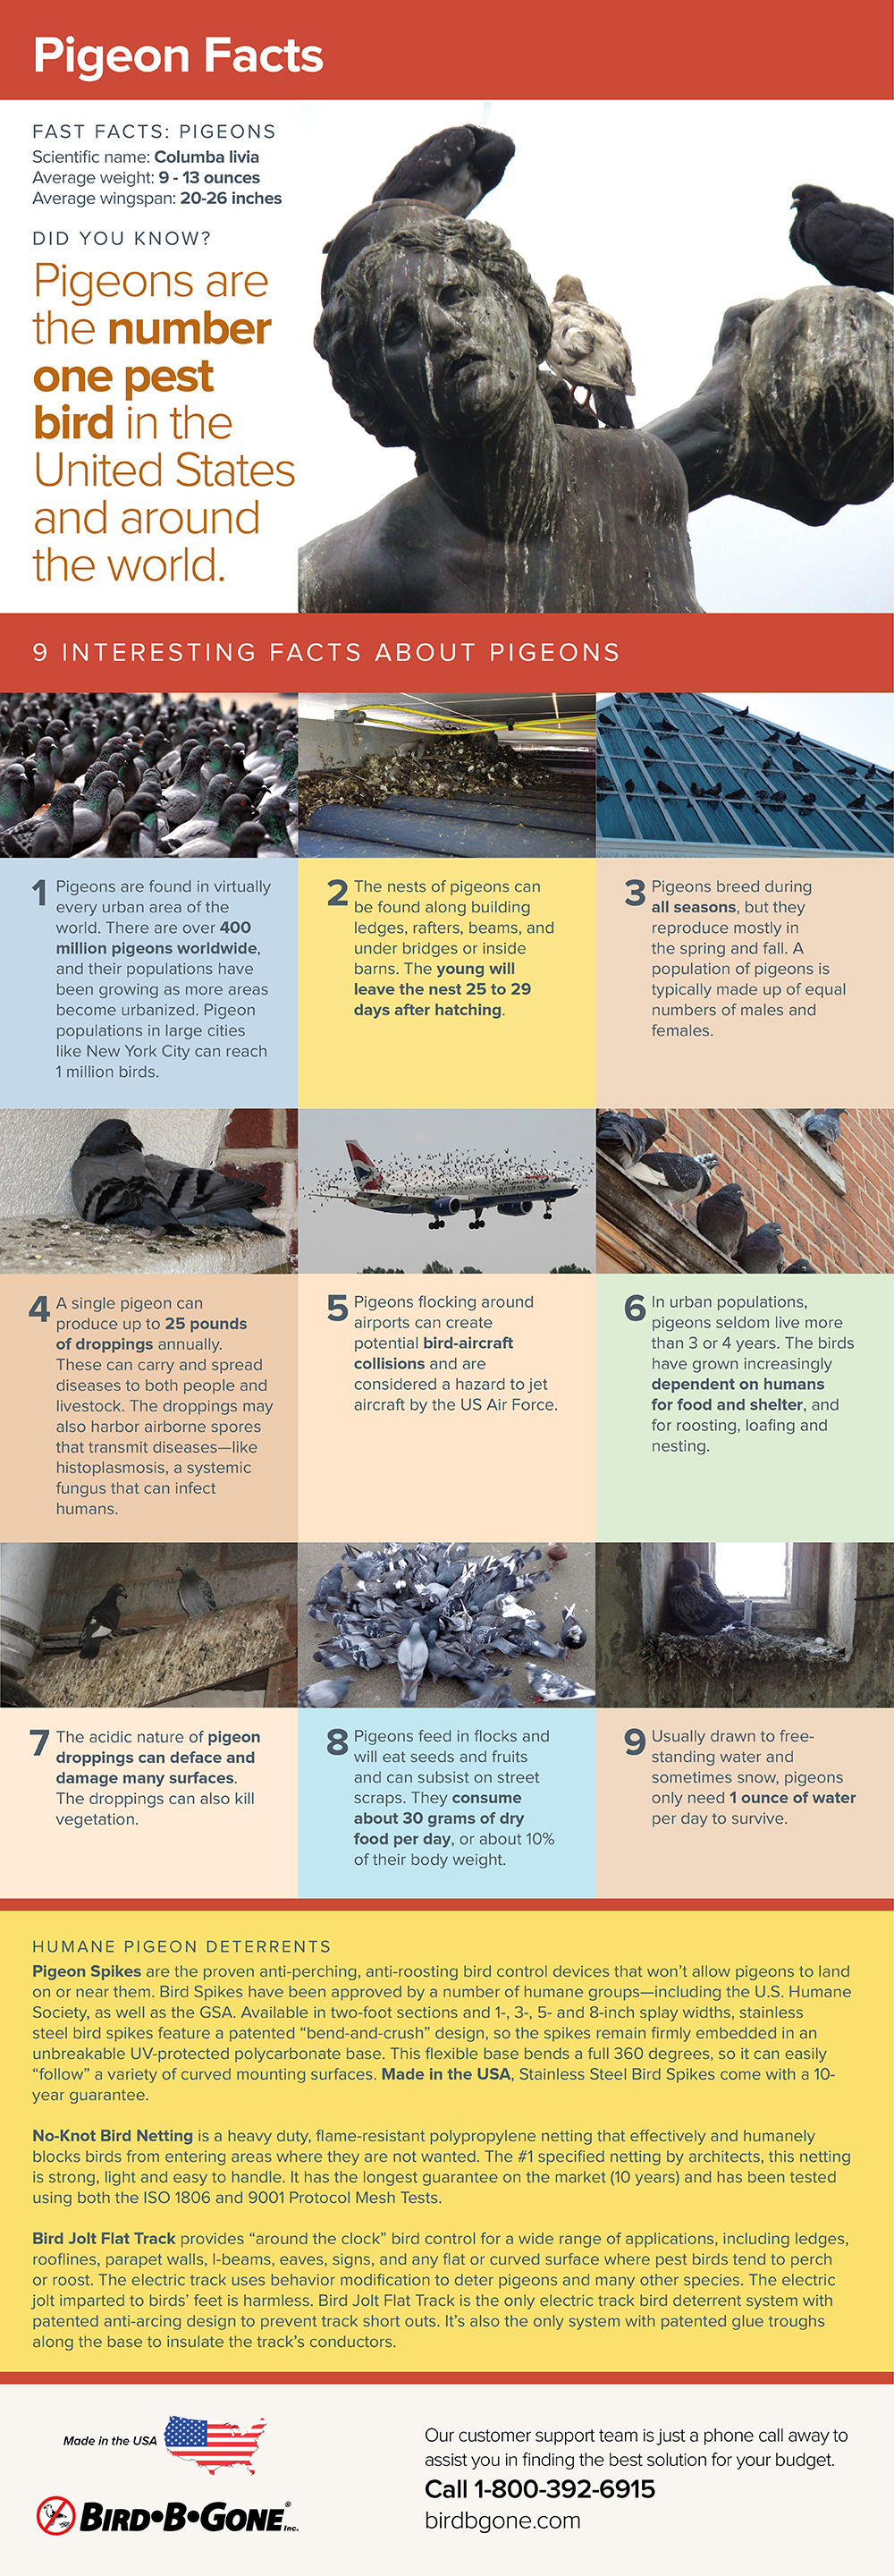 an infographic with 9 facts about pigeons